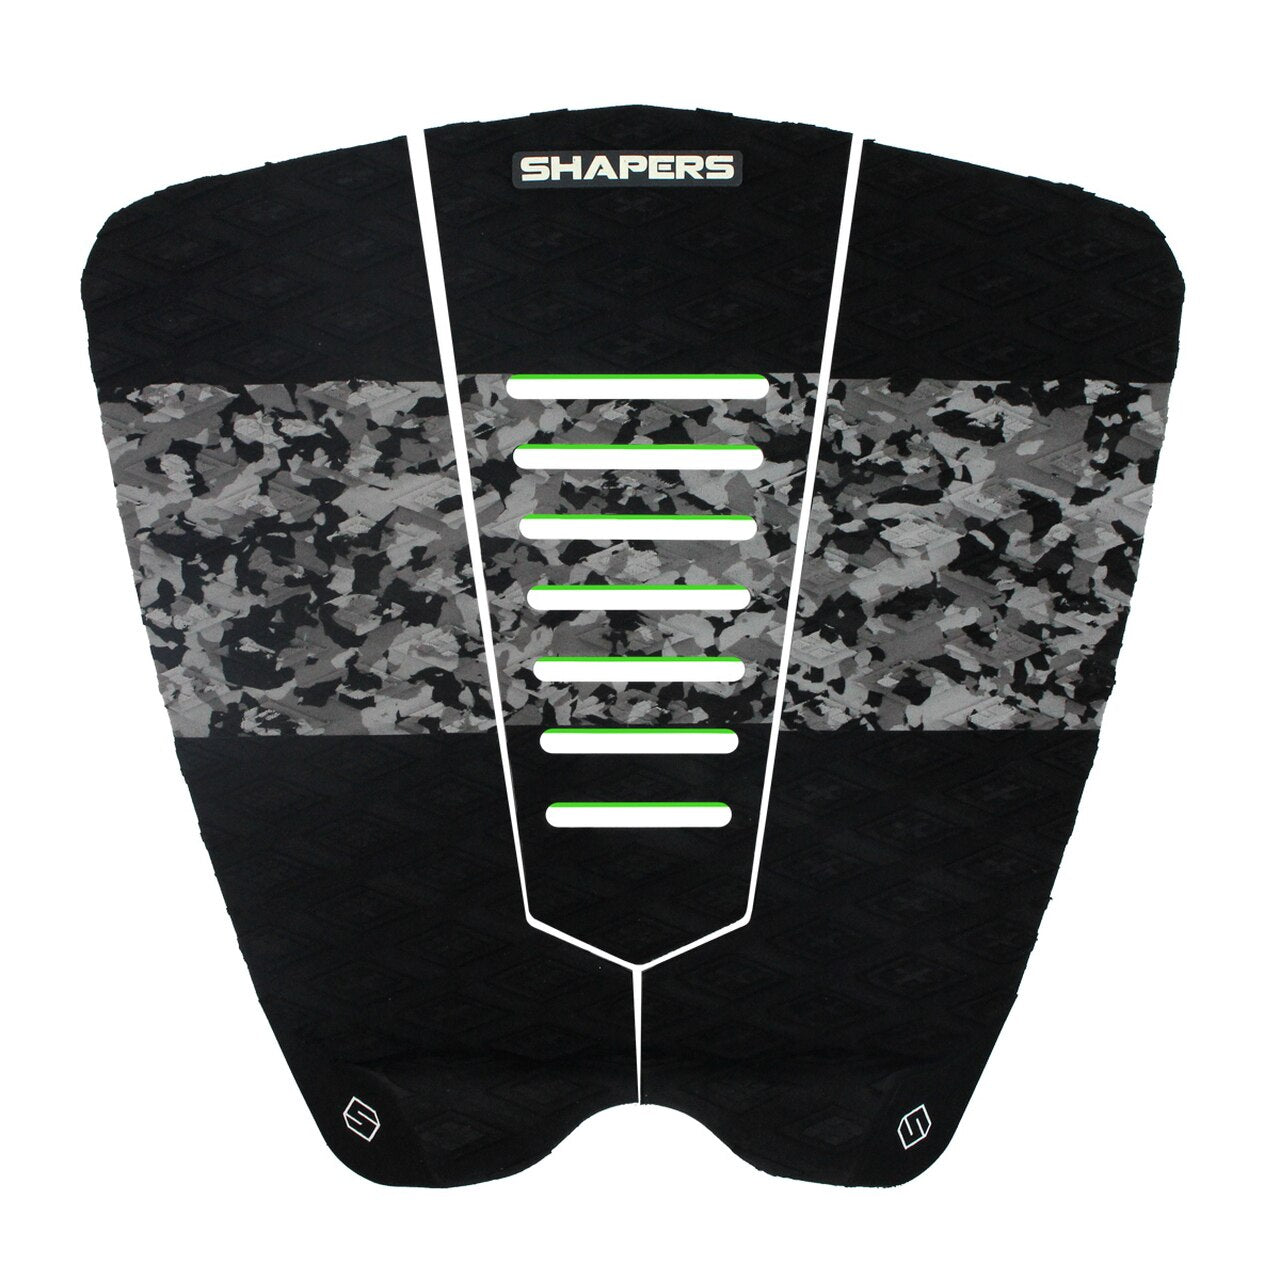 Shapers deck grip - Matt Banting athlete series 3 piece tail pad